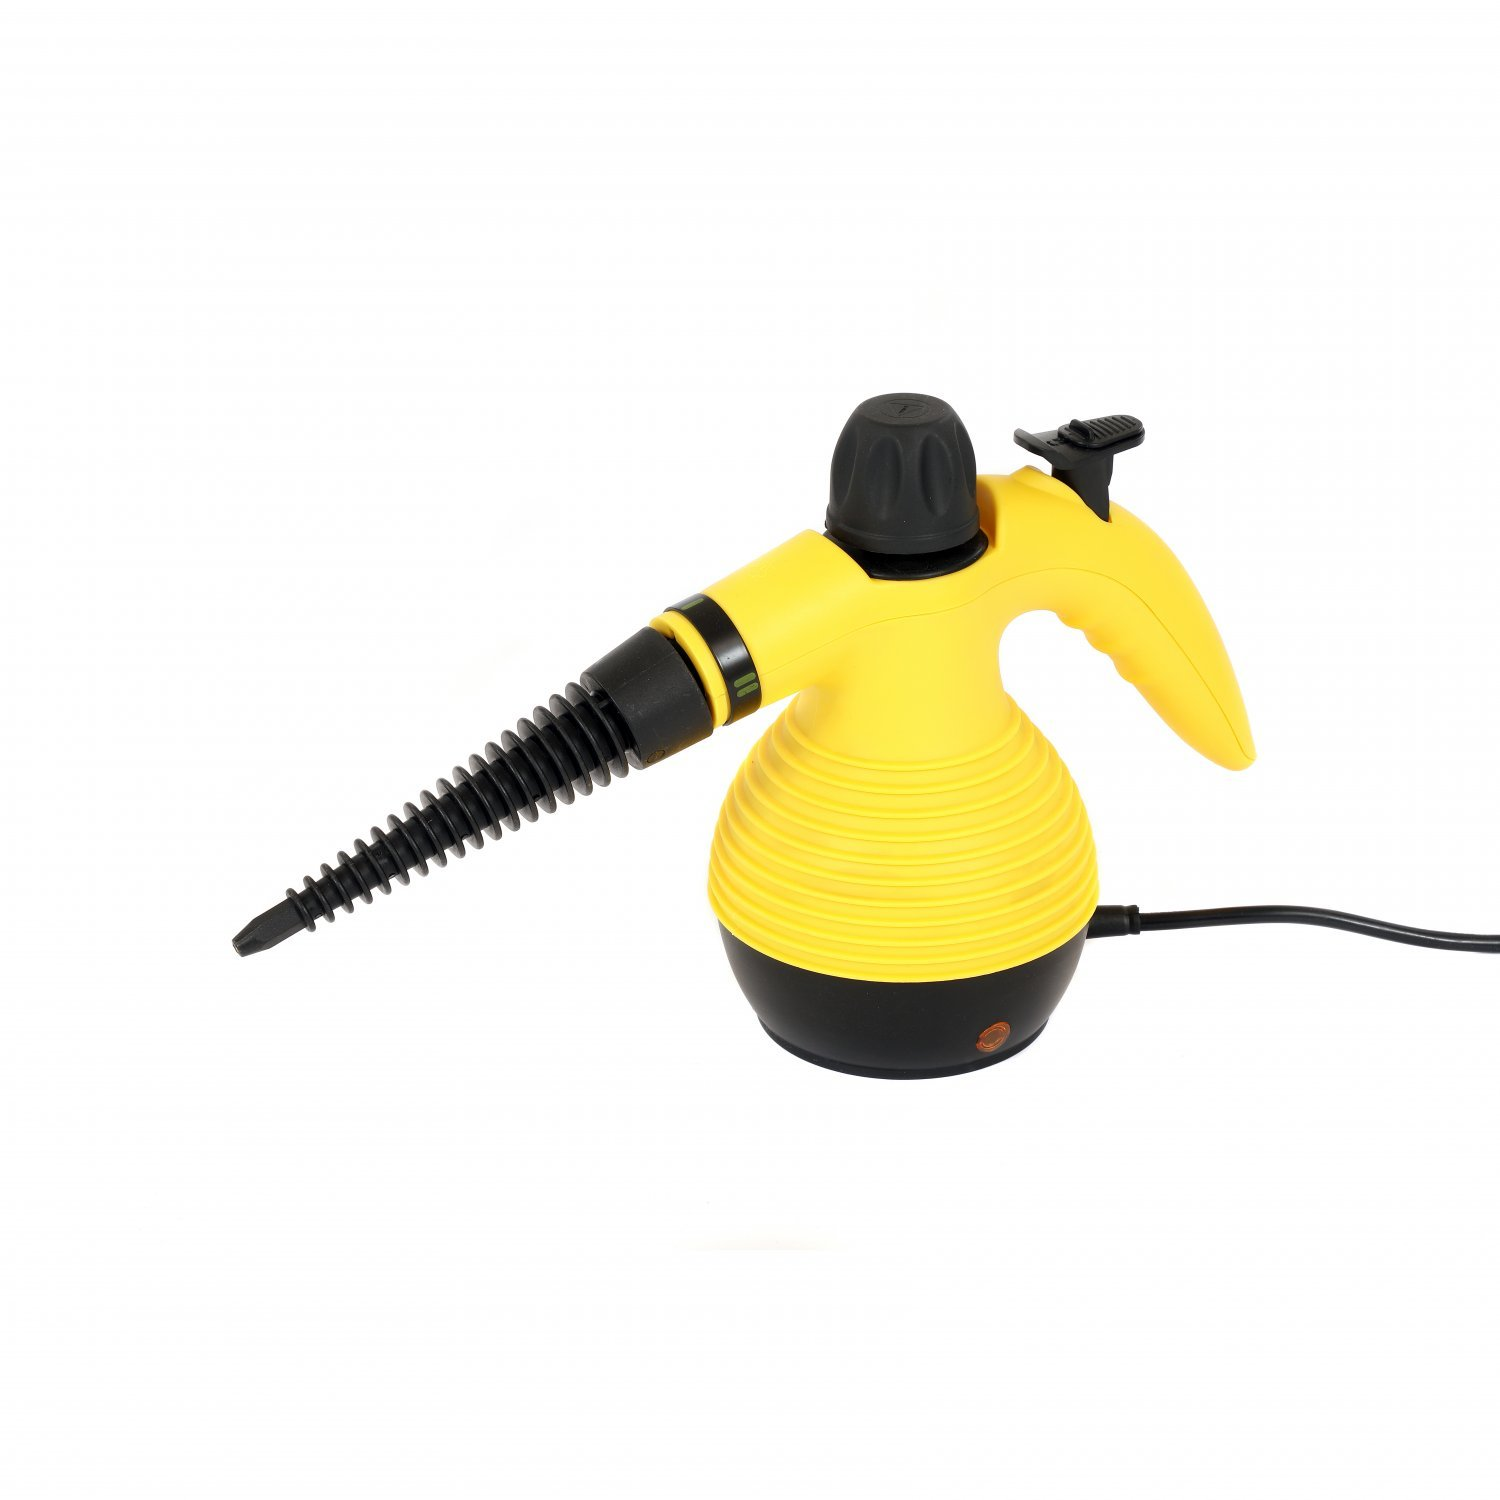 Handheld Portable Steam Cleaner Steamer With 9 Accessories